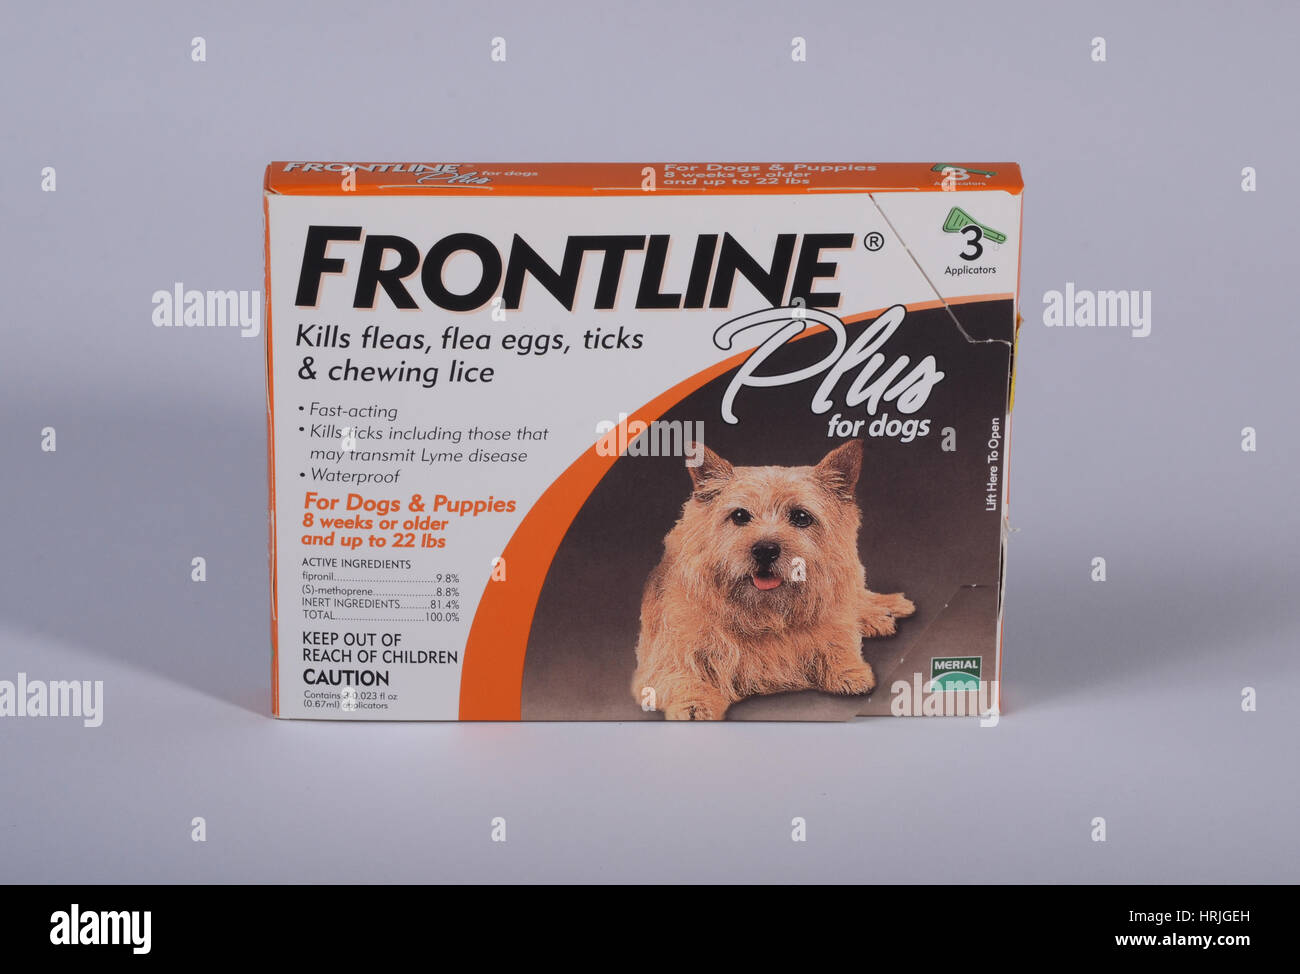 Frontline for Dogs - Stock Image